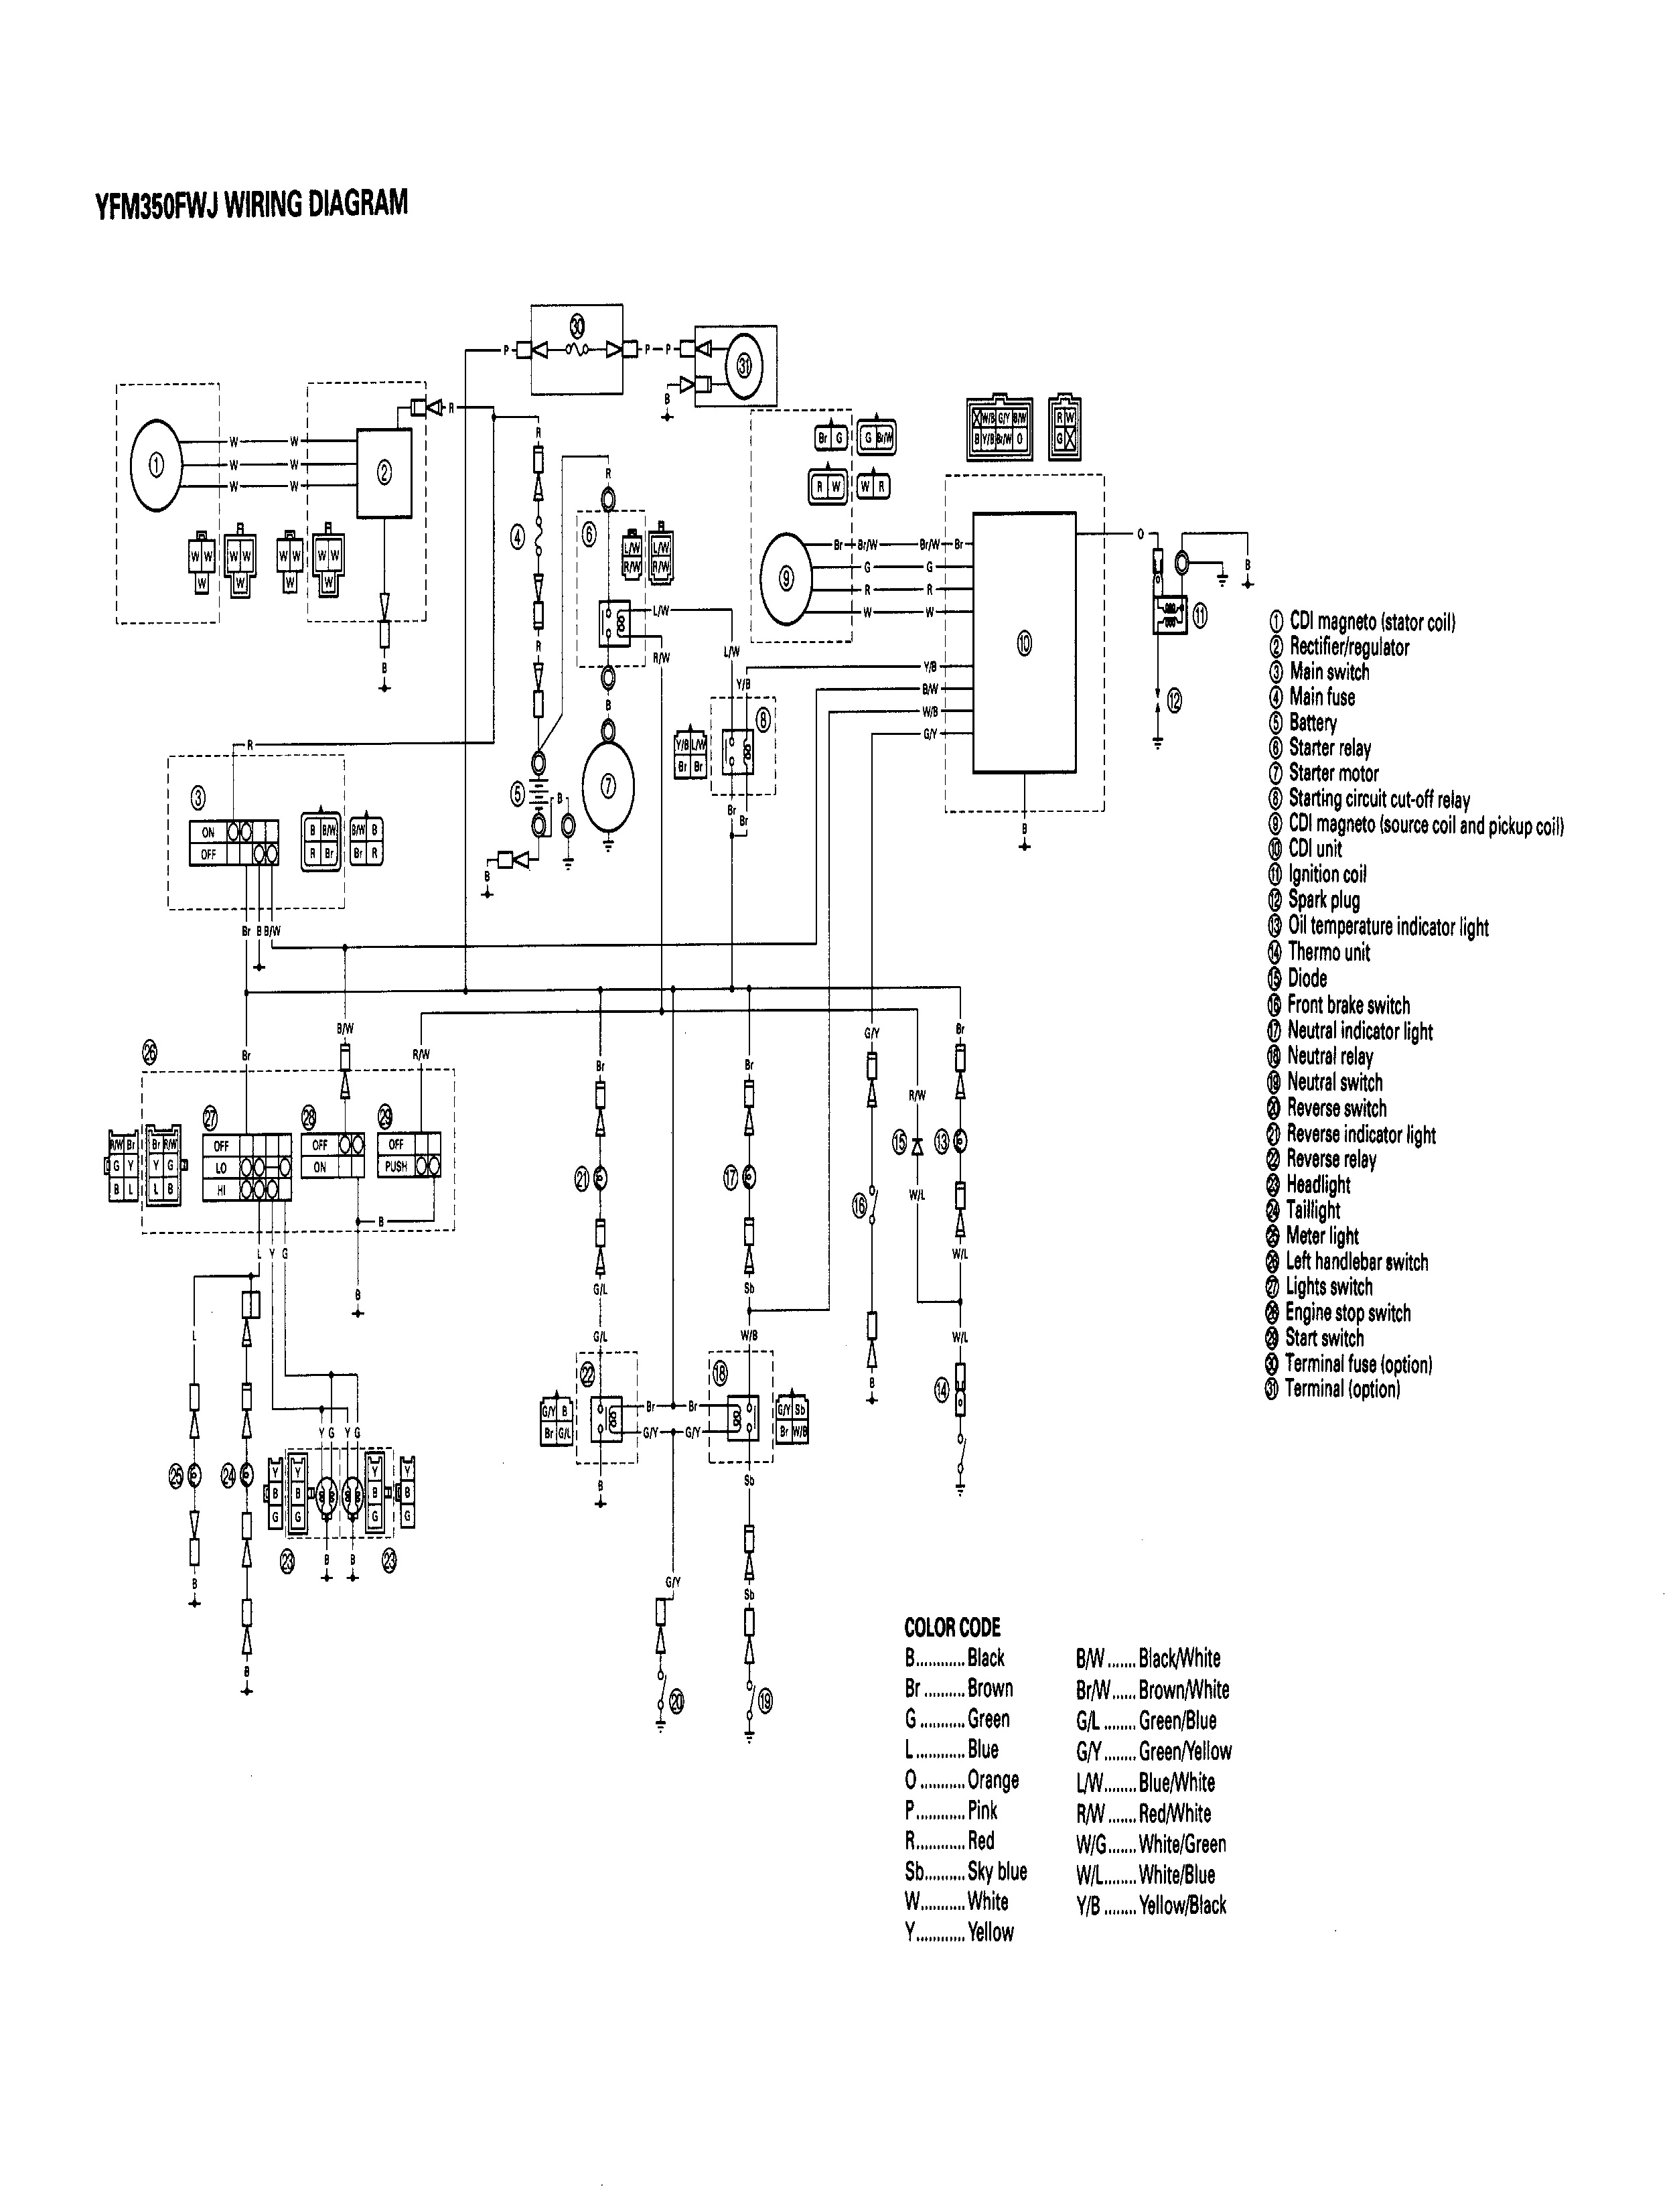 honda trx wiring diagram schematics and wiring diagrams wiring diagram honda fourtrax 300